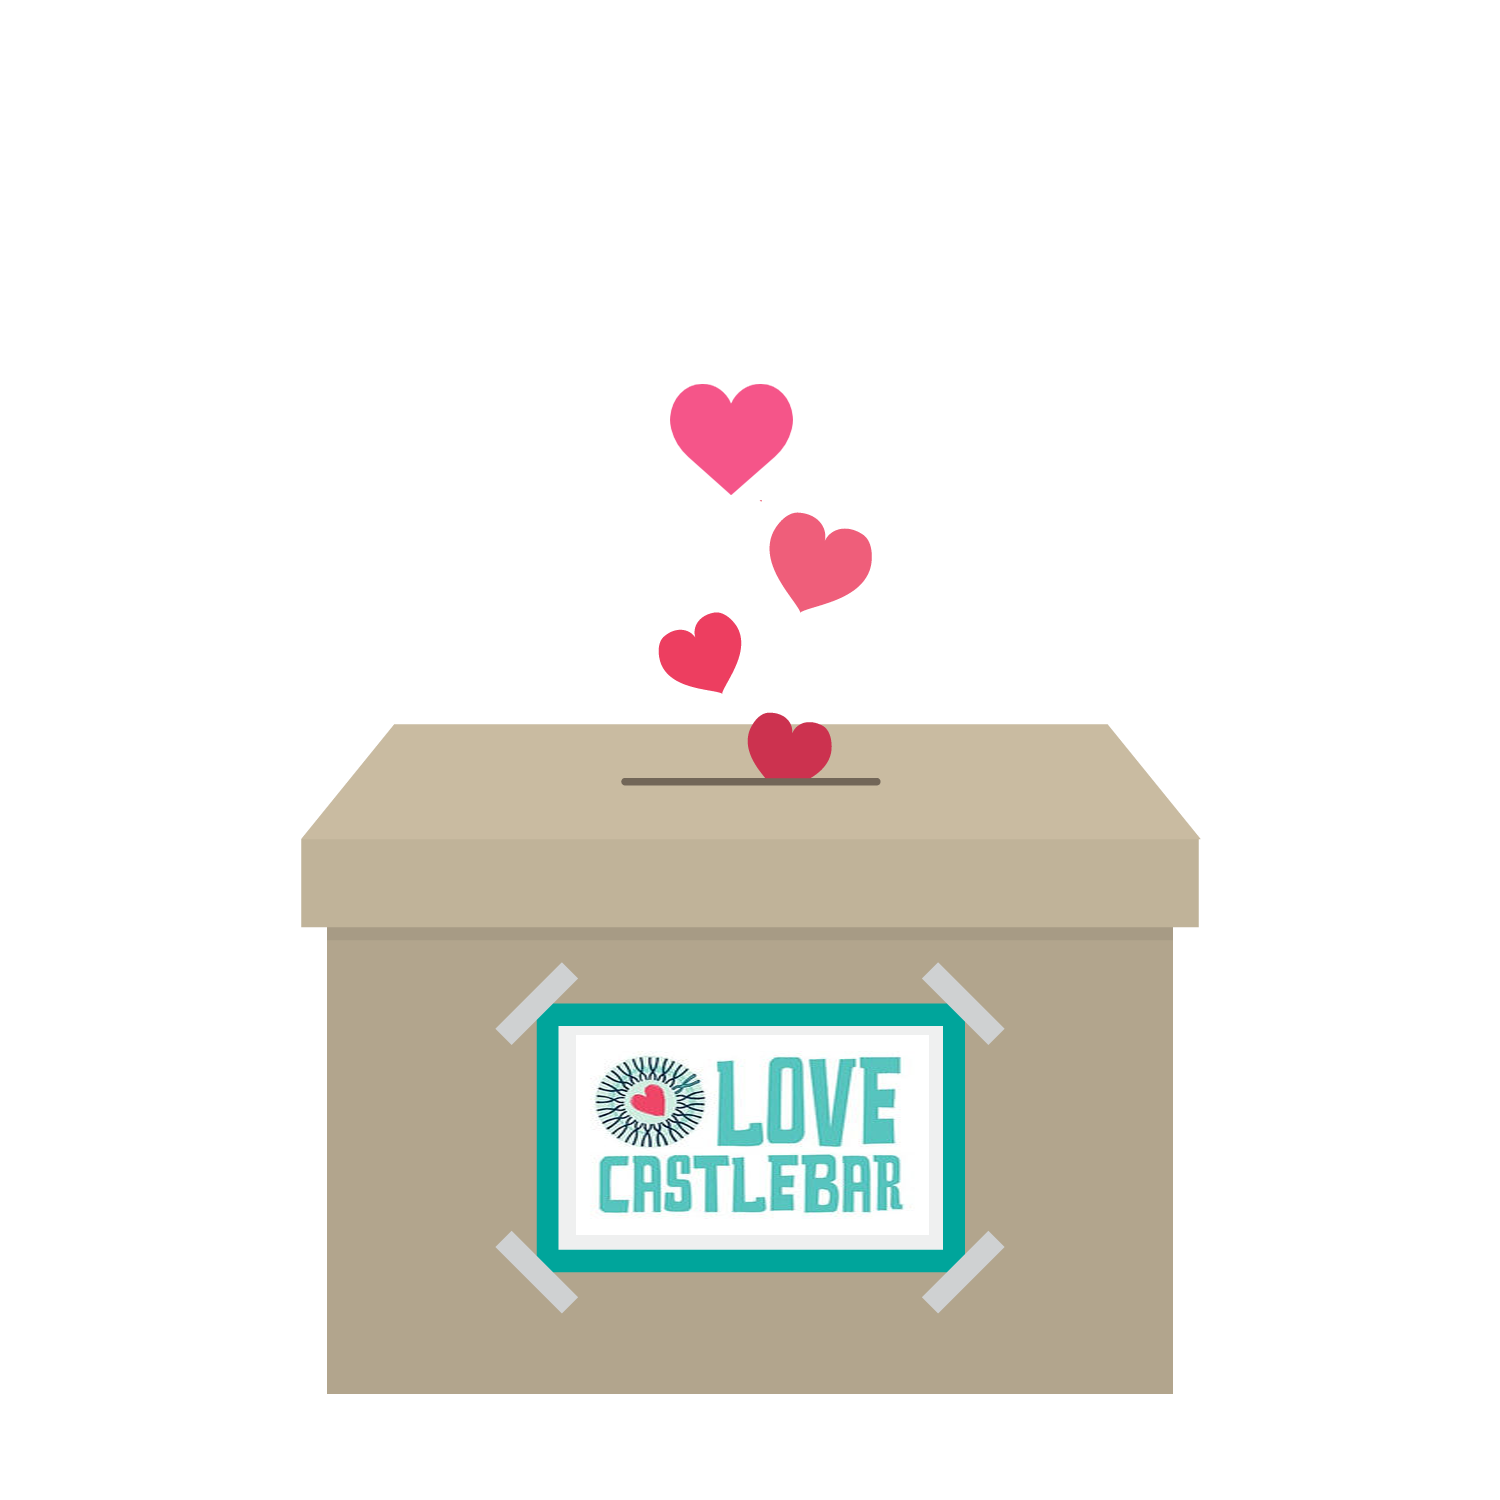 Donate to Love Castlebar